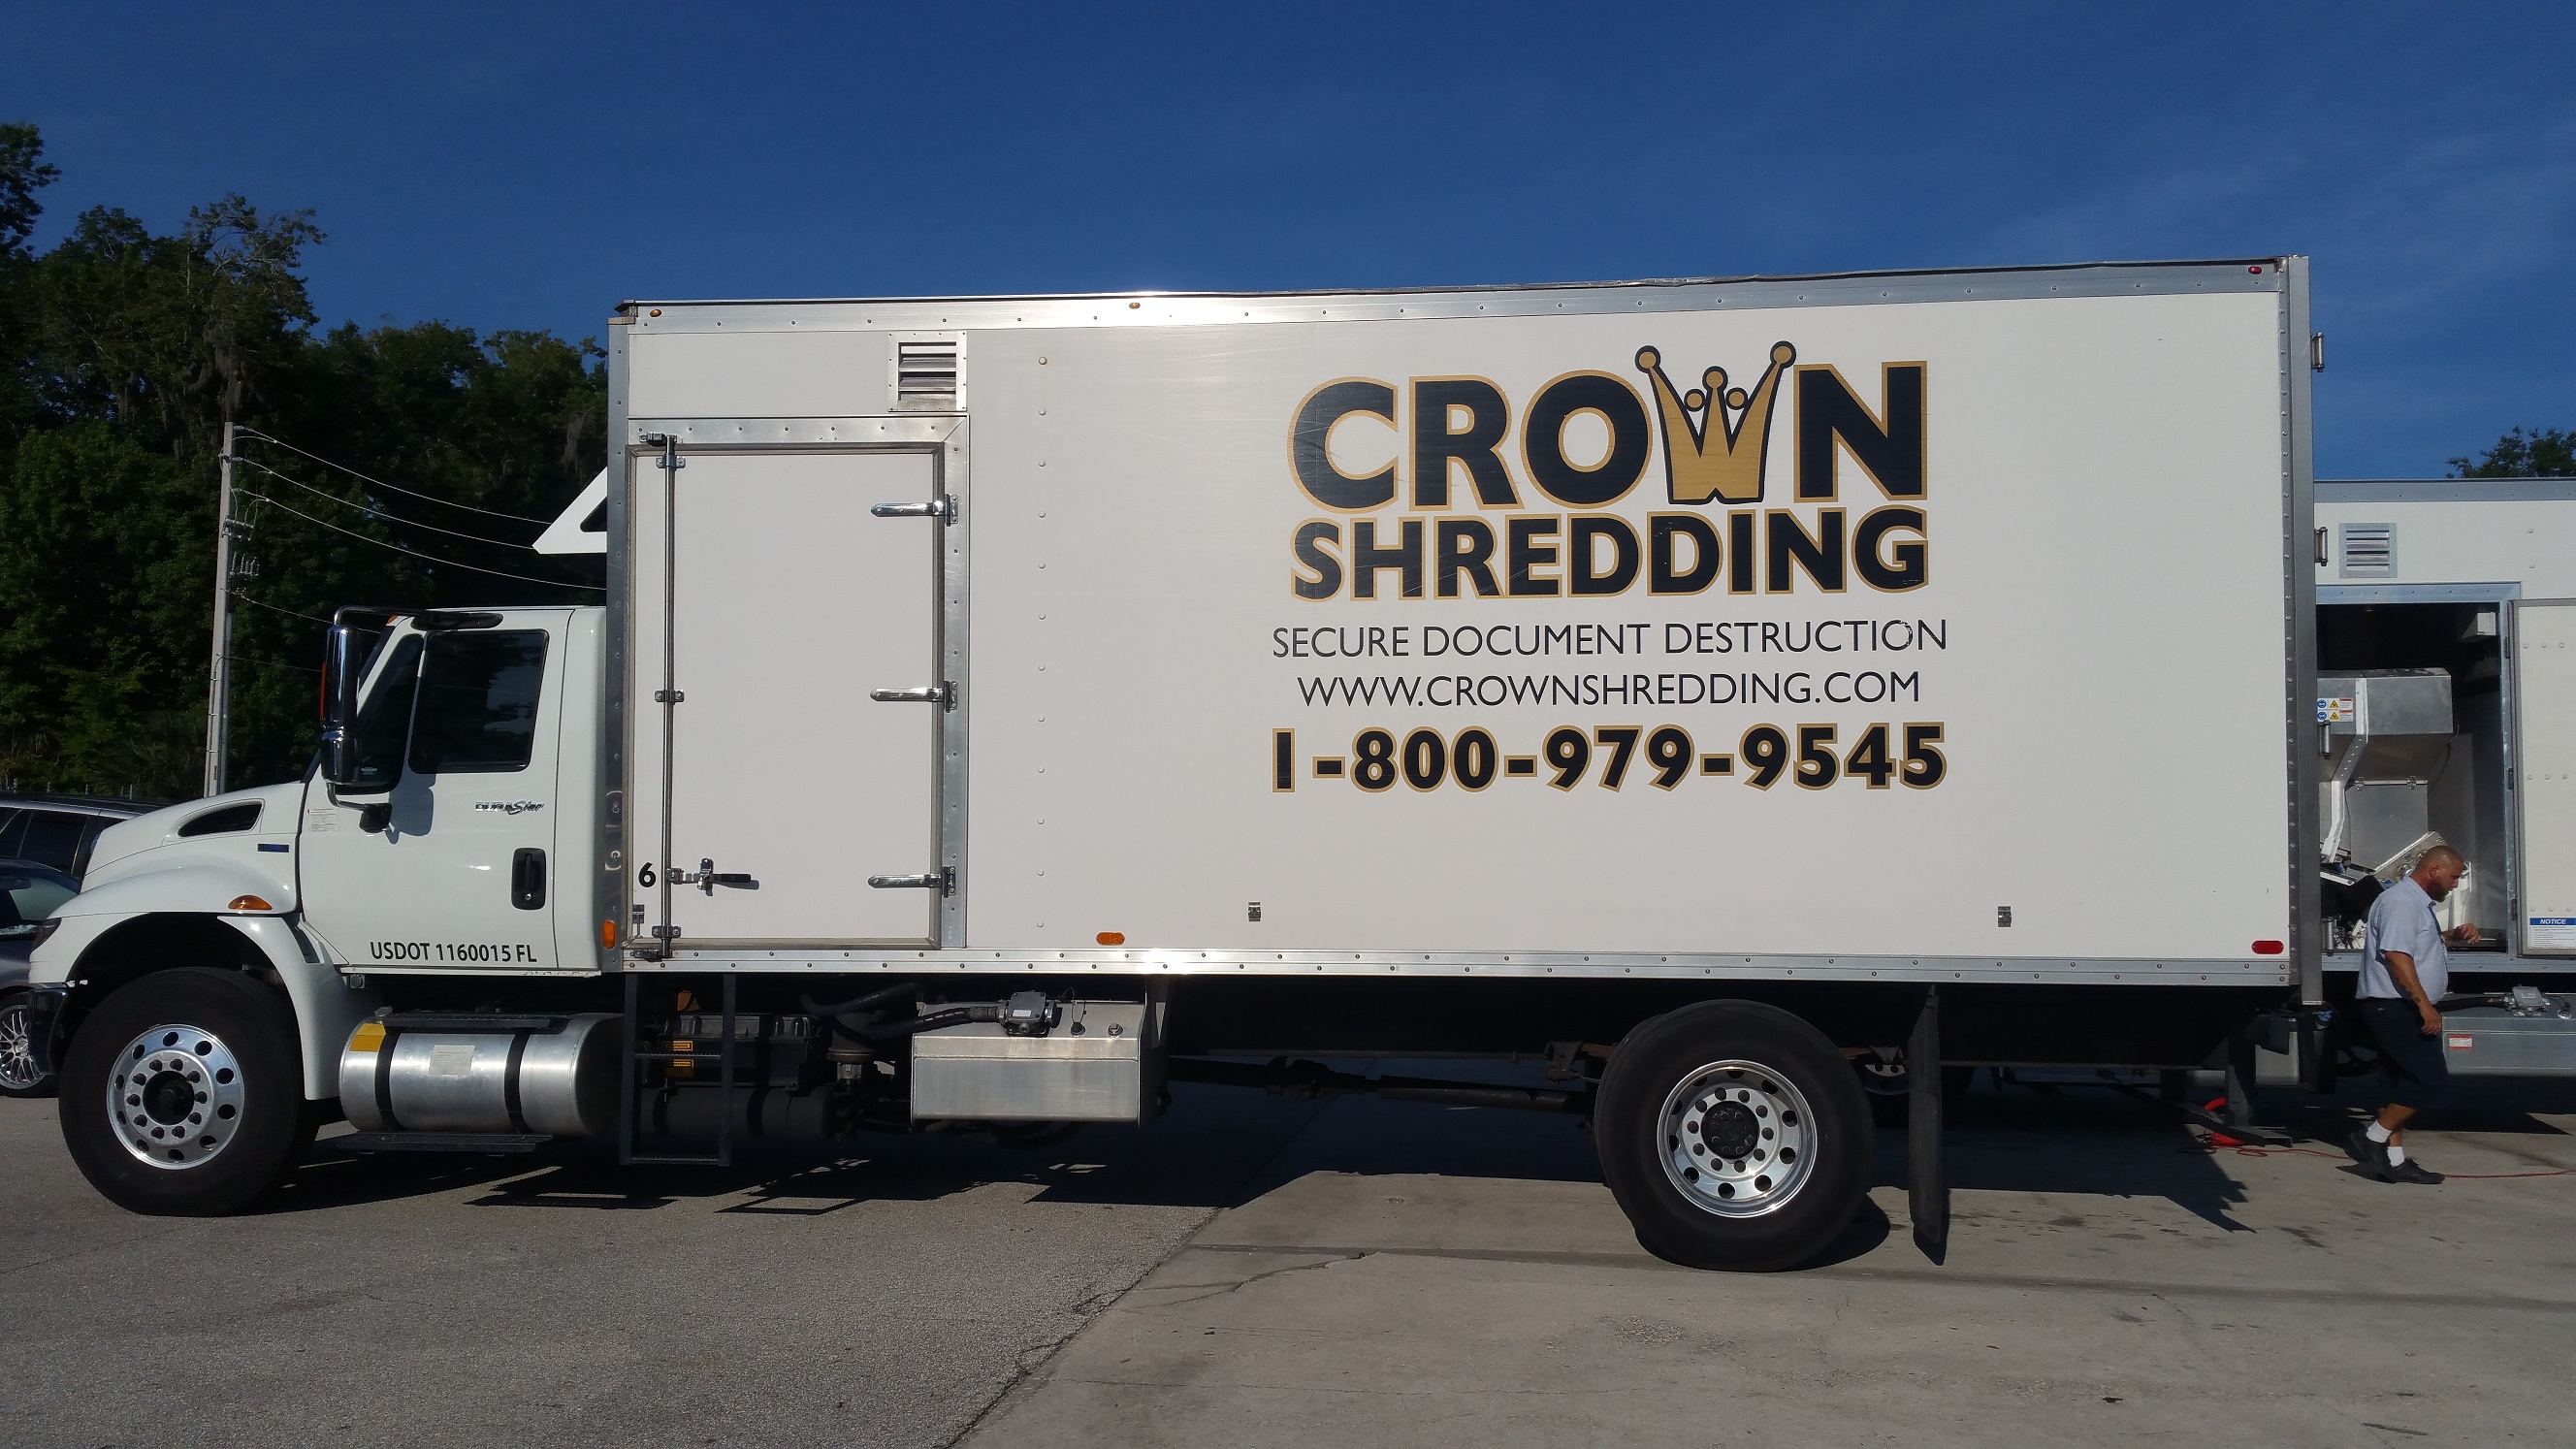 commercial paper shredders for sale Visit our website wwwrecyclingequipmentcom recycling equipment corporation 831 west fifth street, lansdale, pa 19446 phone: 267-218-7200.